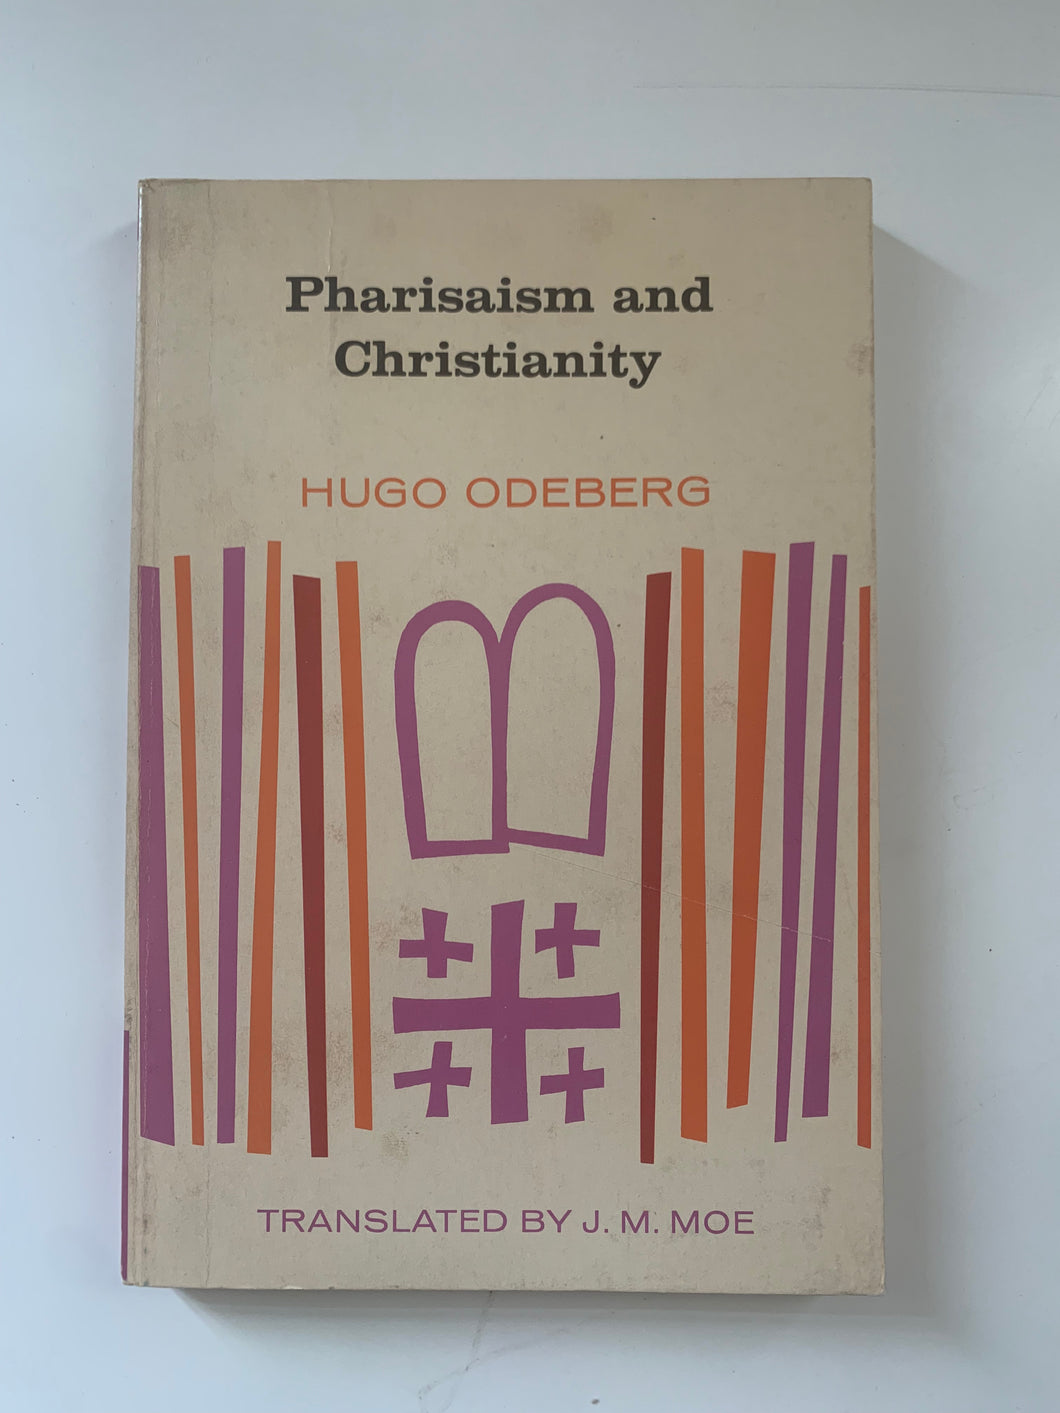 Pharisaism and Christianity by Hugo Odeberg